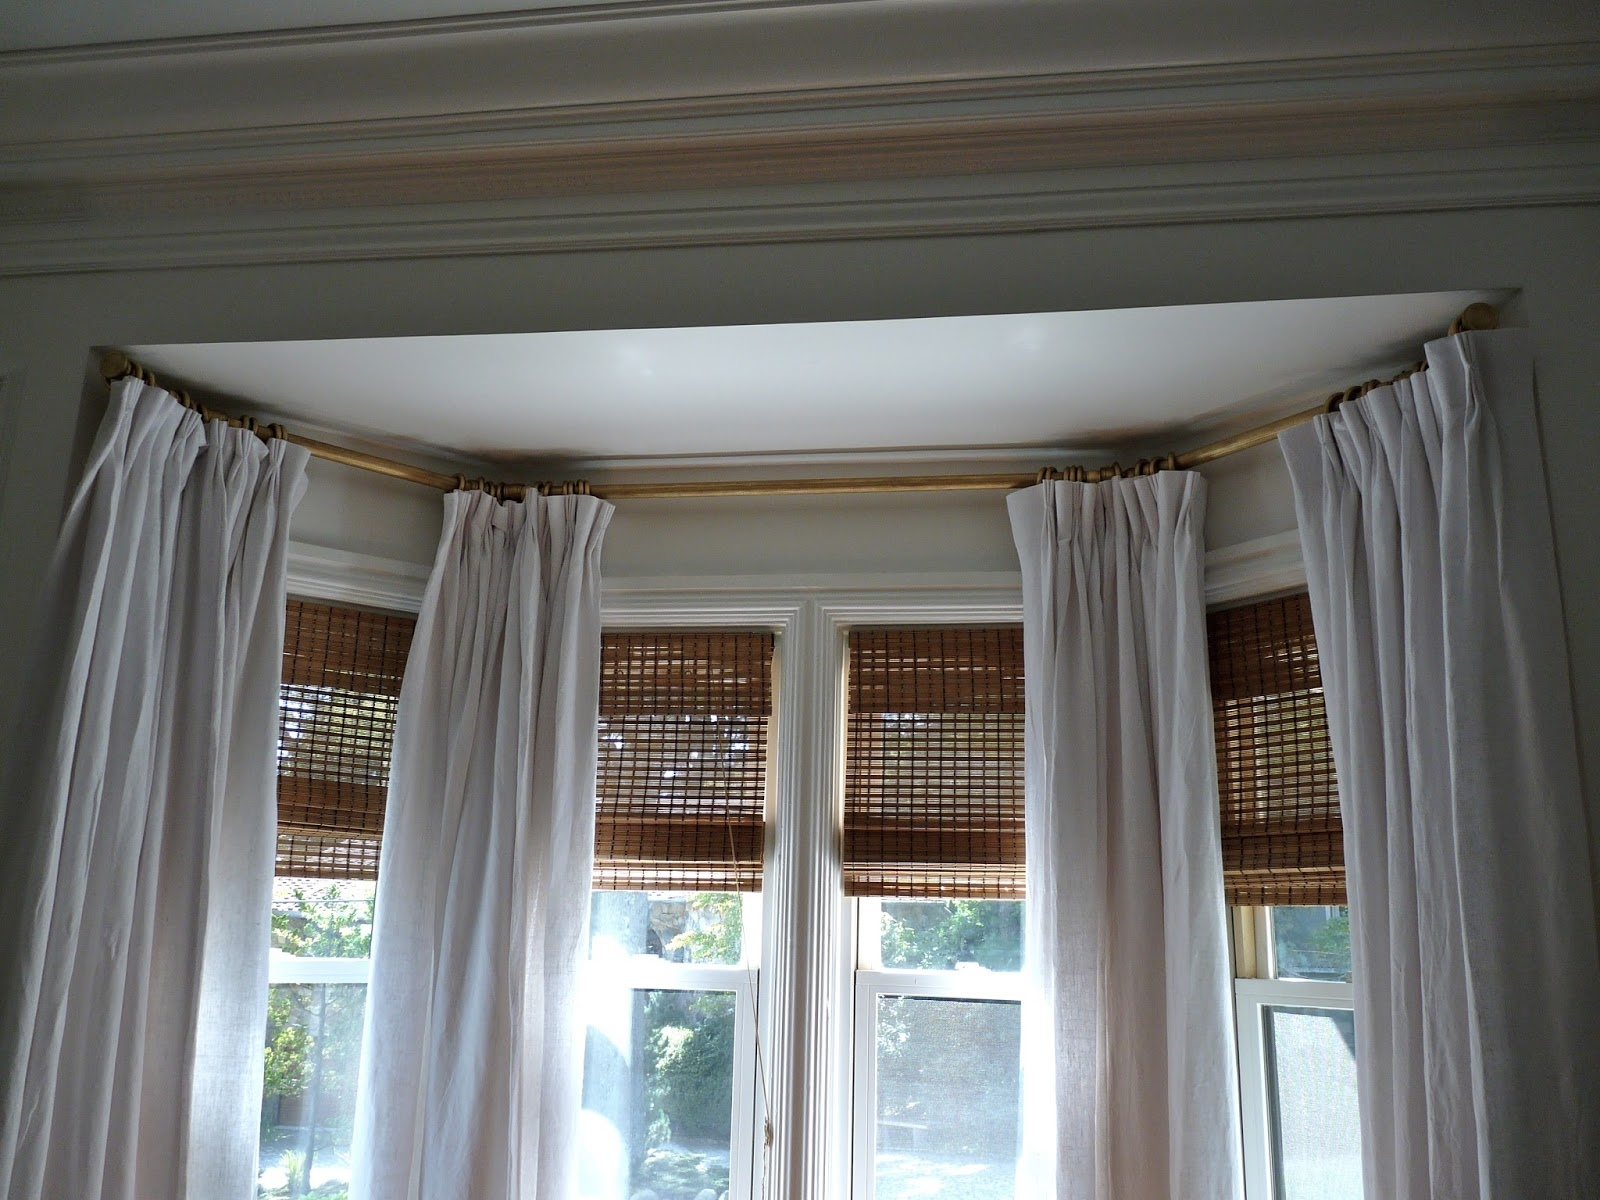 Bay Window Curtain Treatments Yahoo Image Search Results Regarding Bay Window Blinds And Curtains (Image 3 of 15)